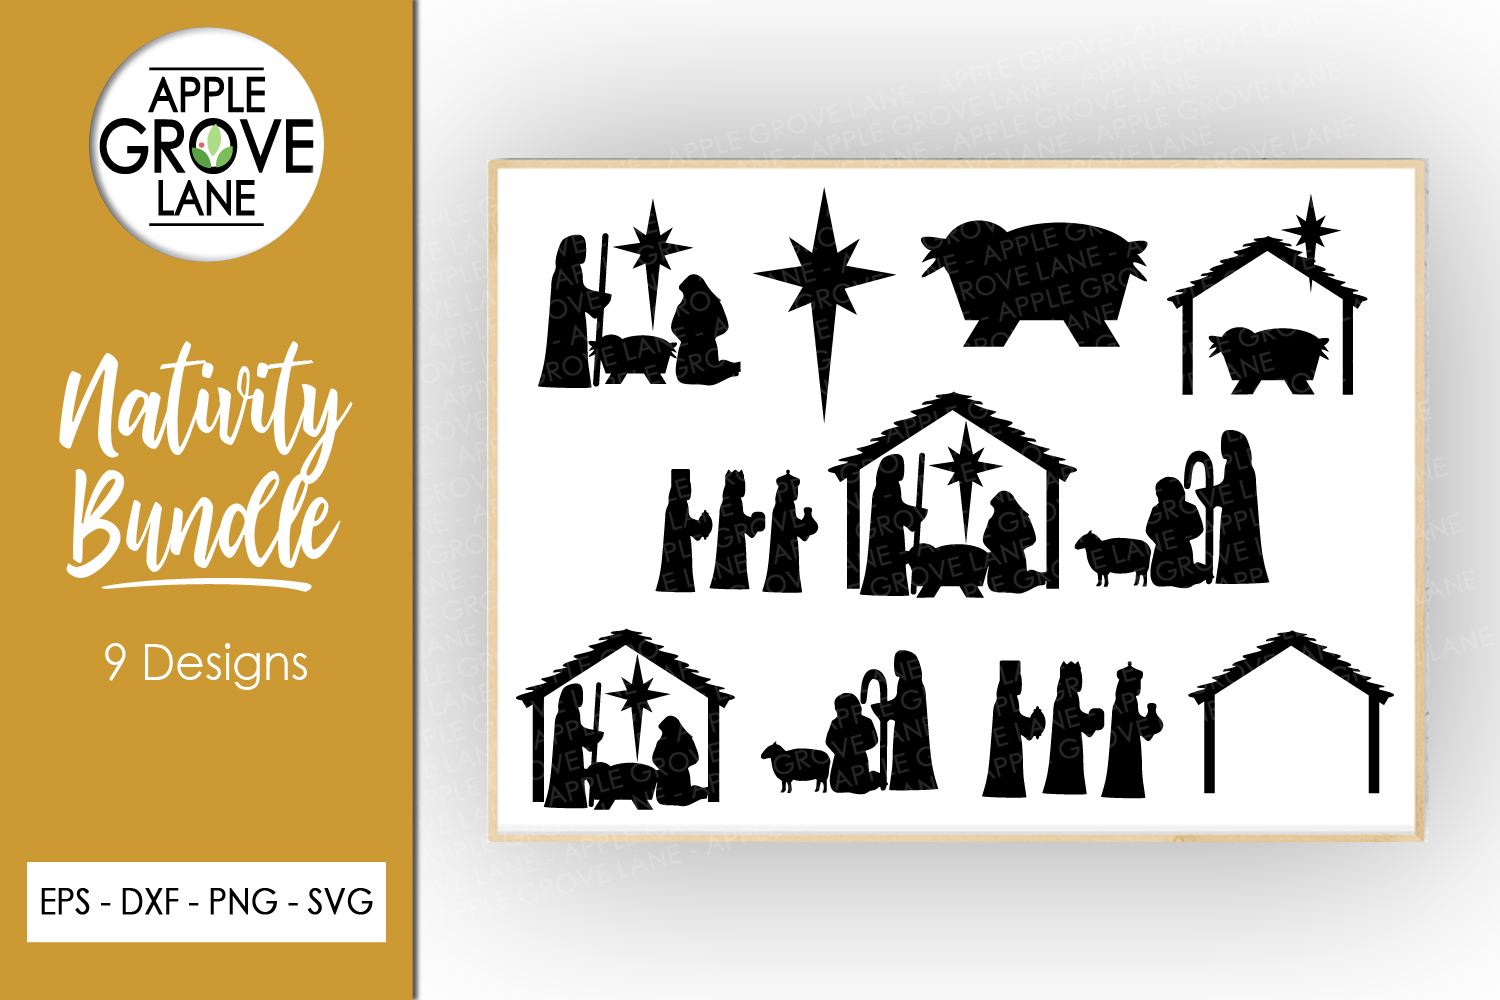 Nativity Svg Bundle - 9 designs included - Svg Cut Files example image 1